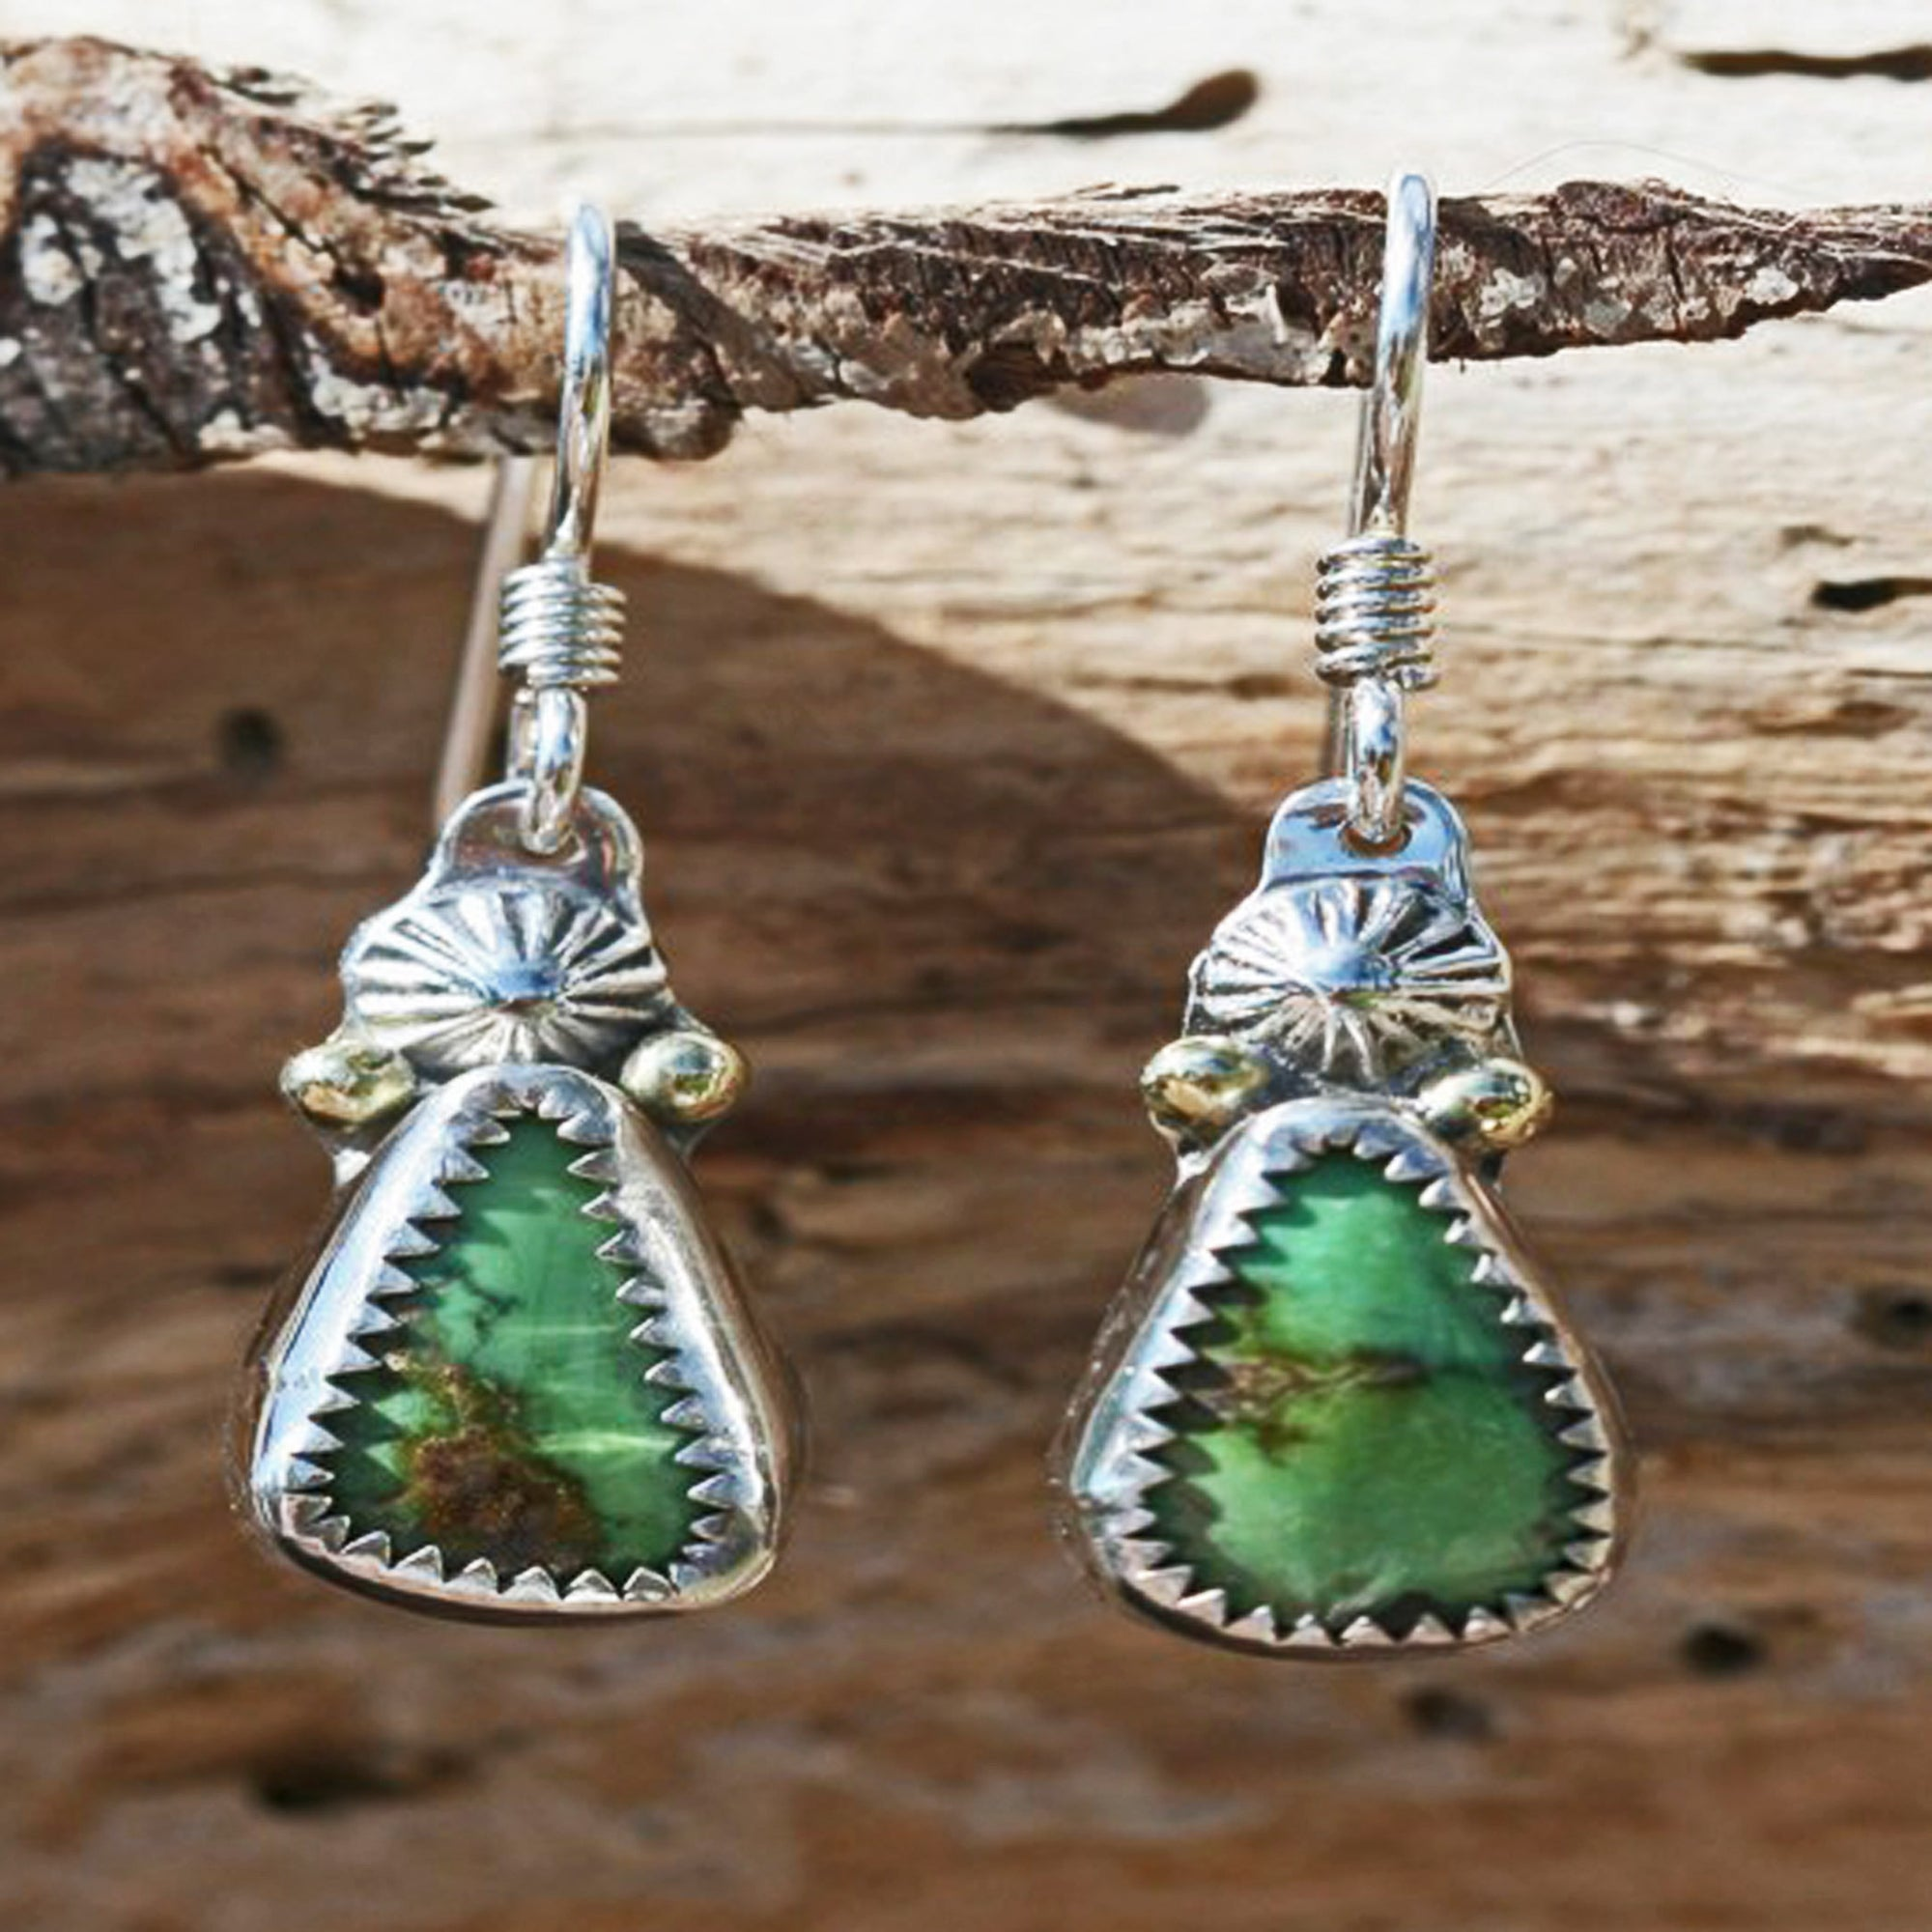 Green Turquoise Earrings - Sterling Silver with 18k Gold Accents - Boho, Southwest, Hearts